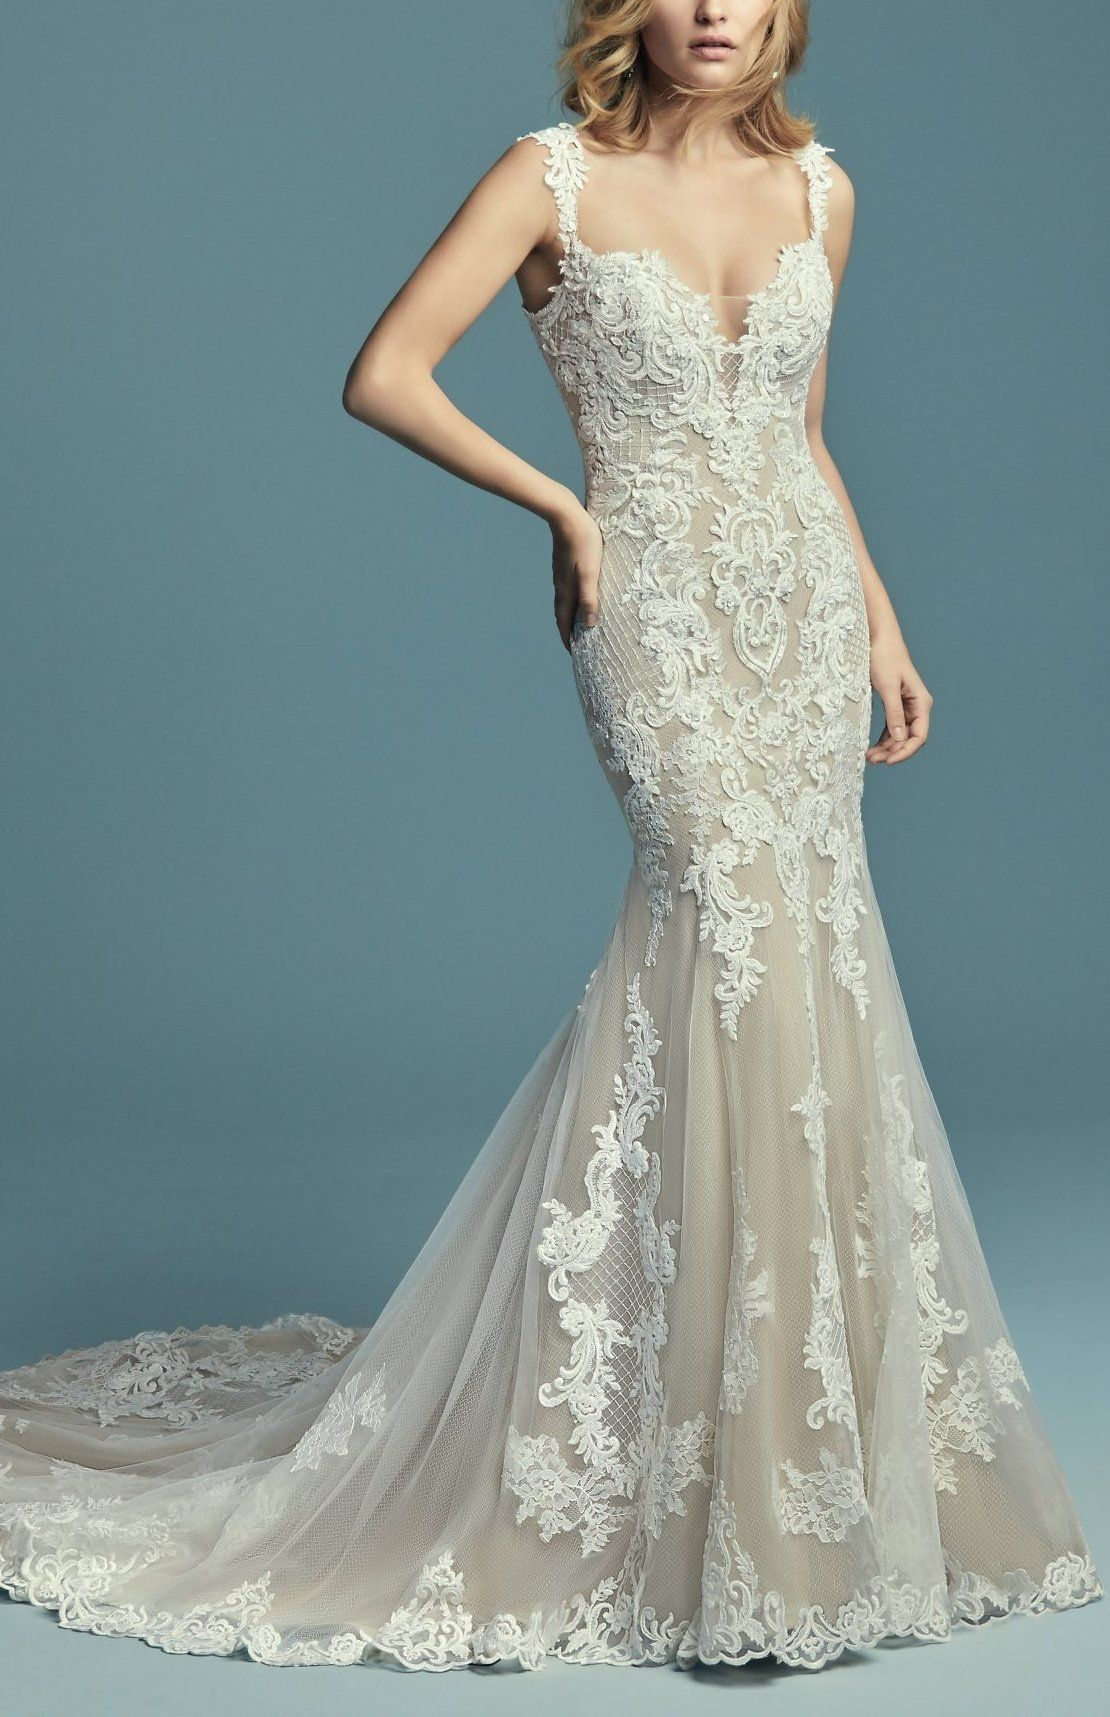 Maggie Sottero Wedding Dresses | Embroidered lace, Wedding dress and ...